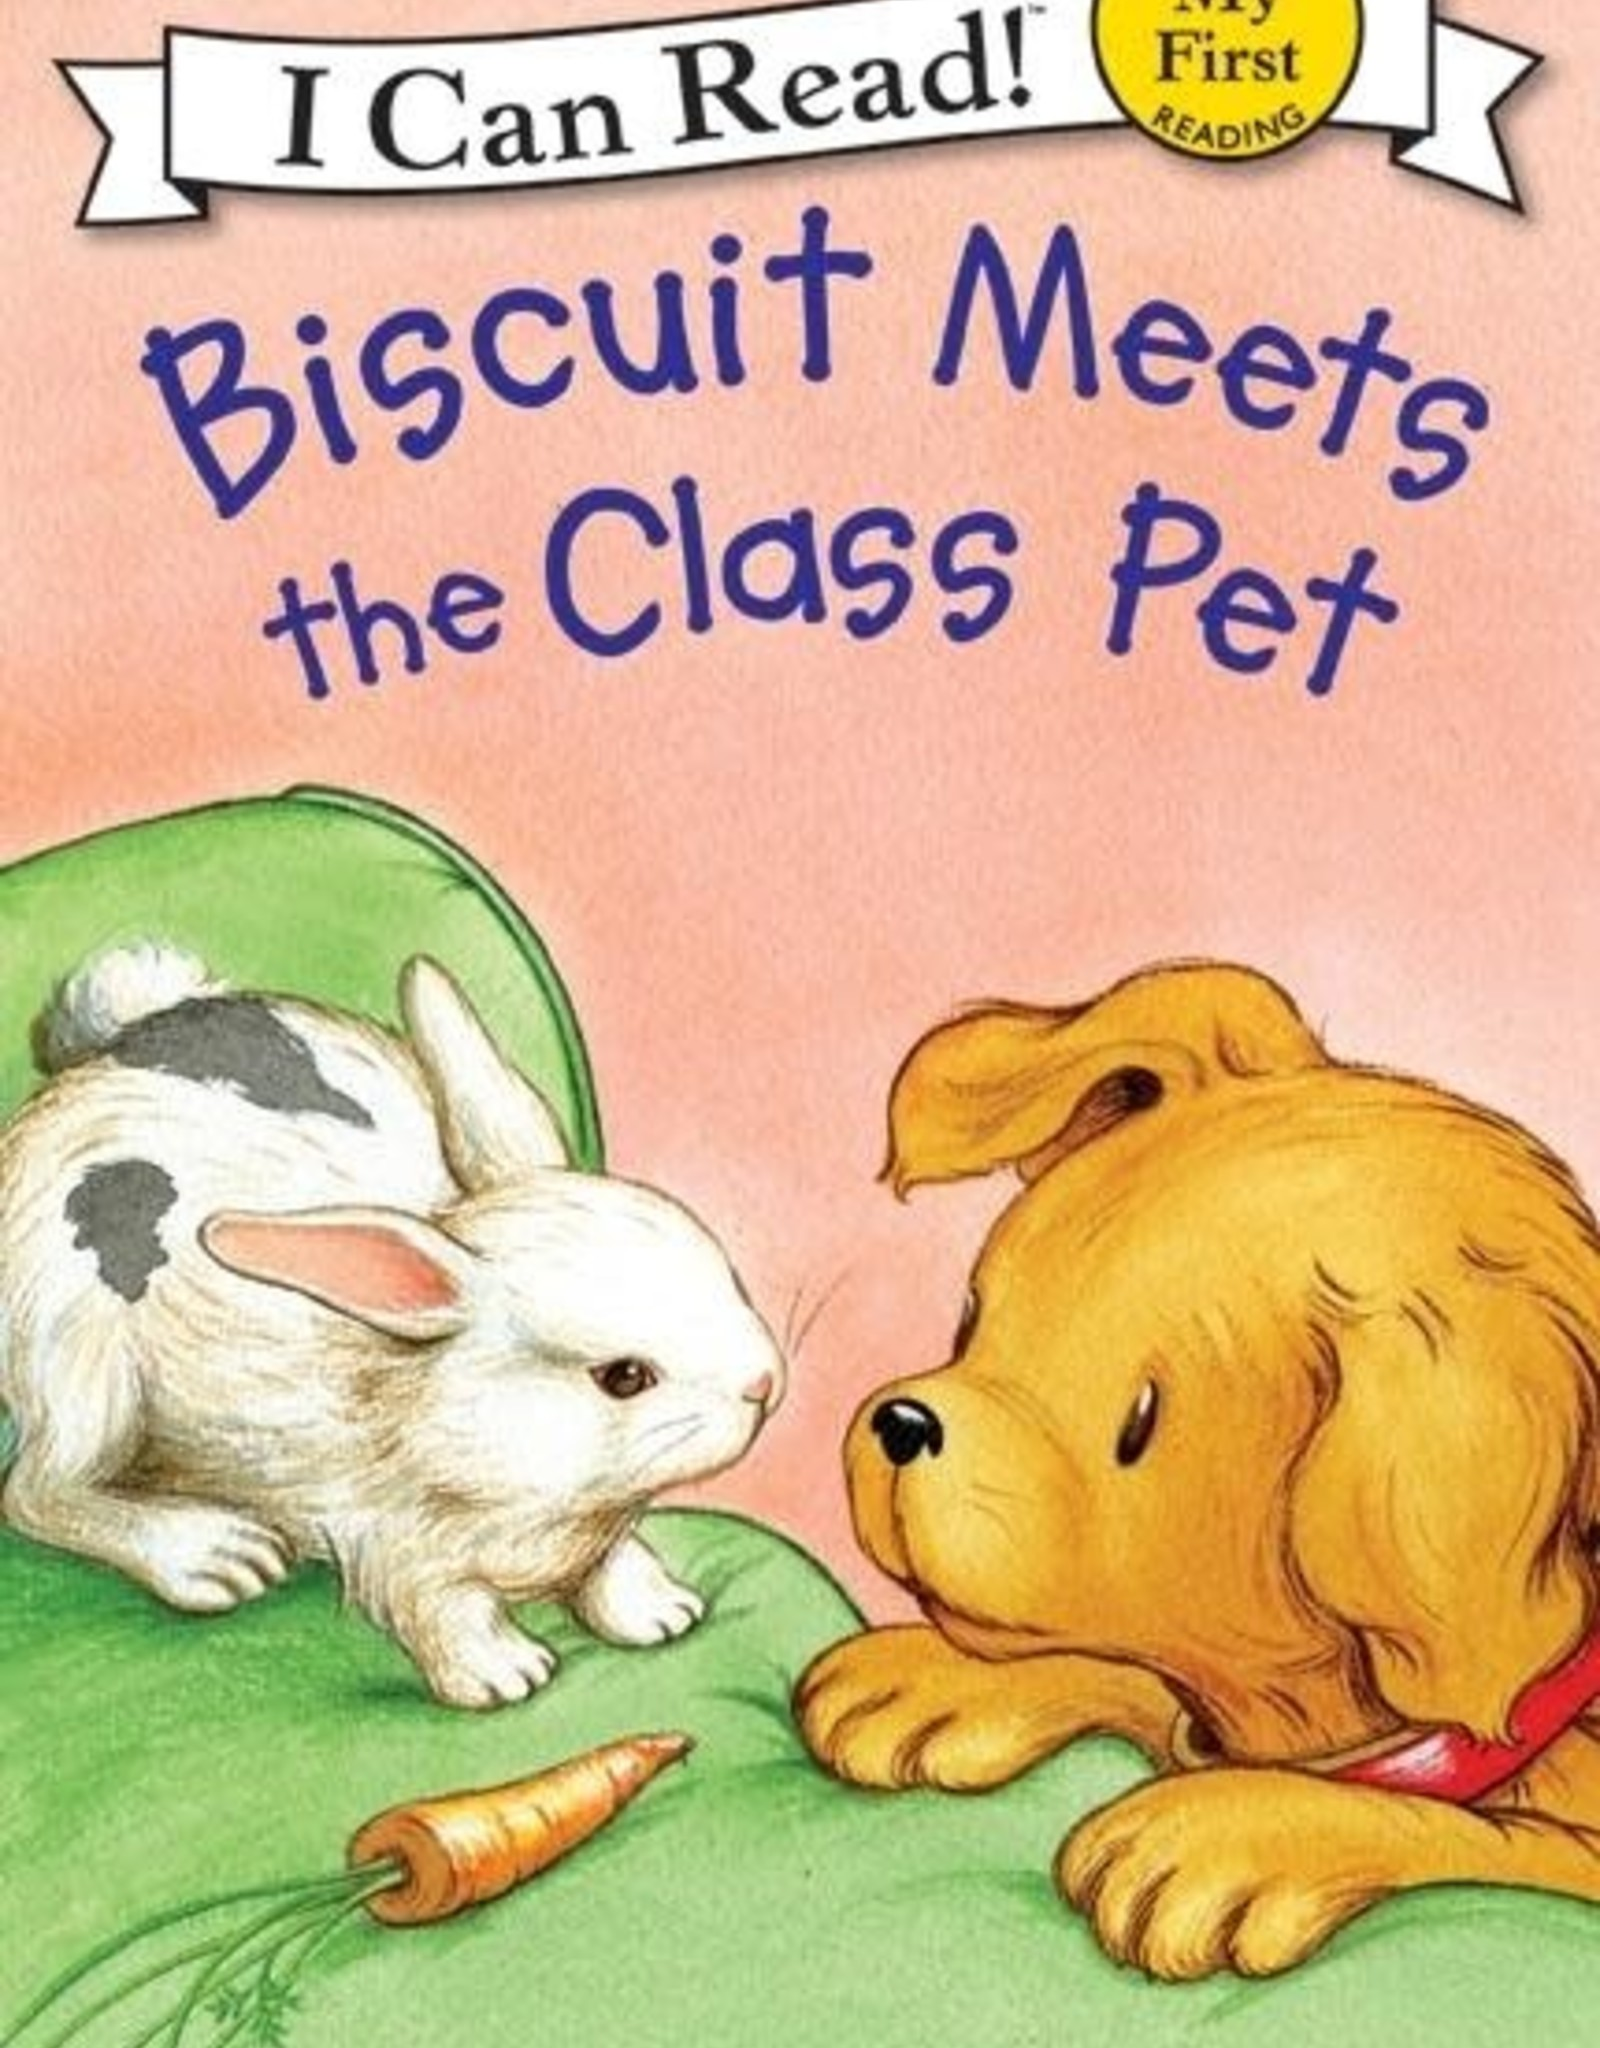 I Can Read! Biscuit Meets Class Pet